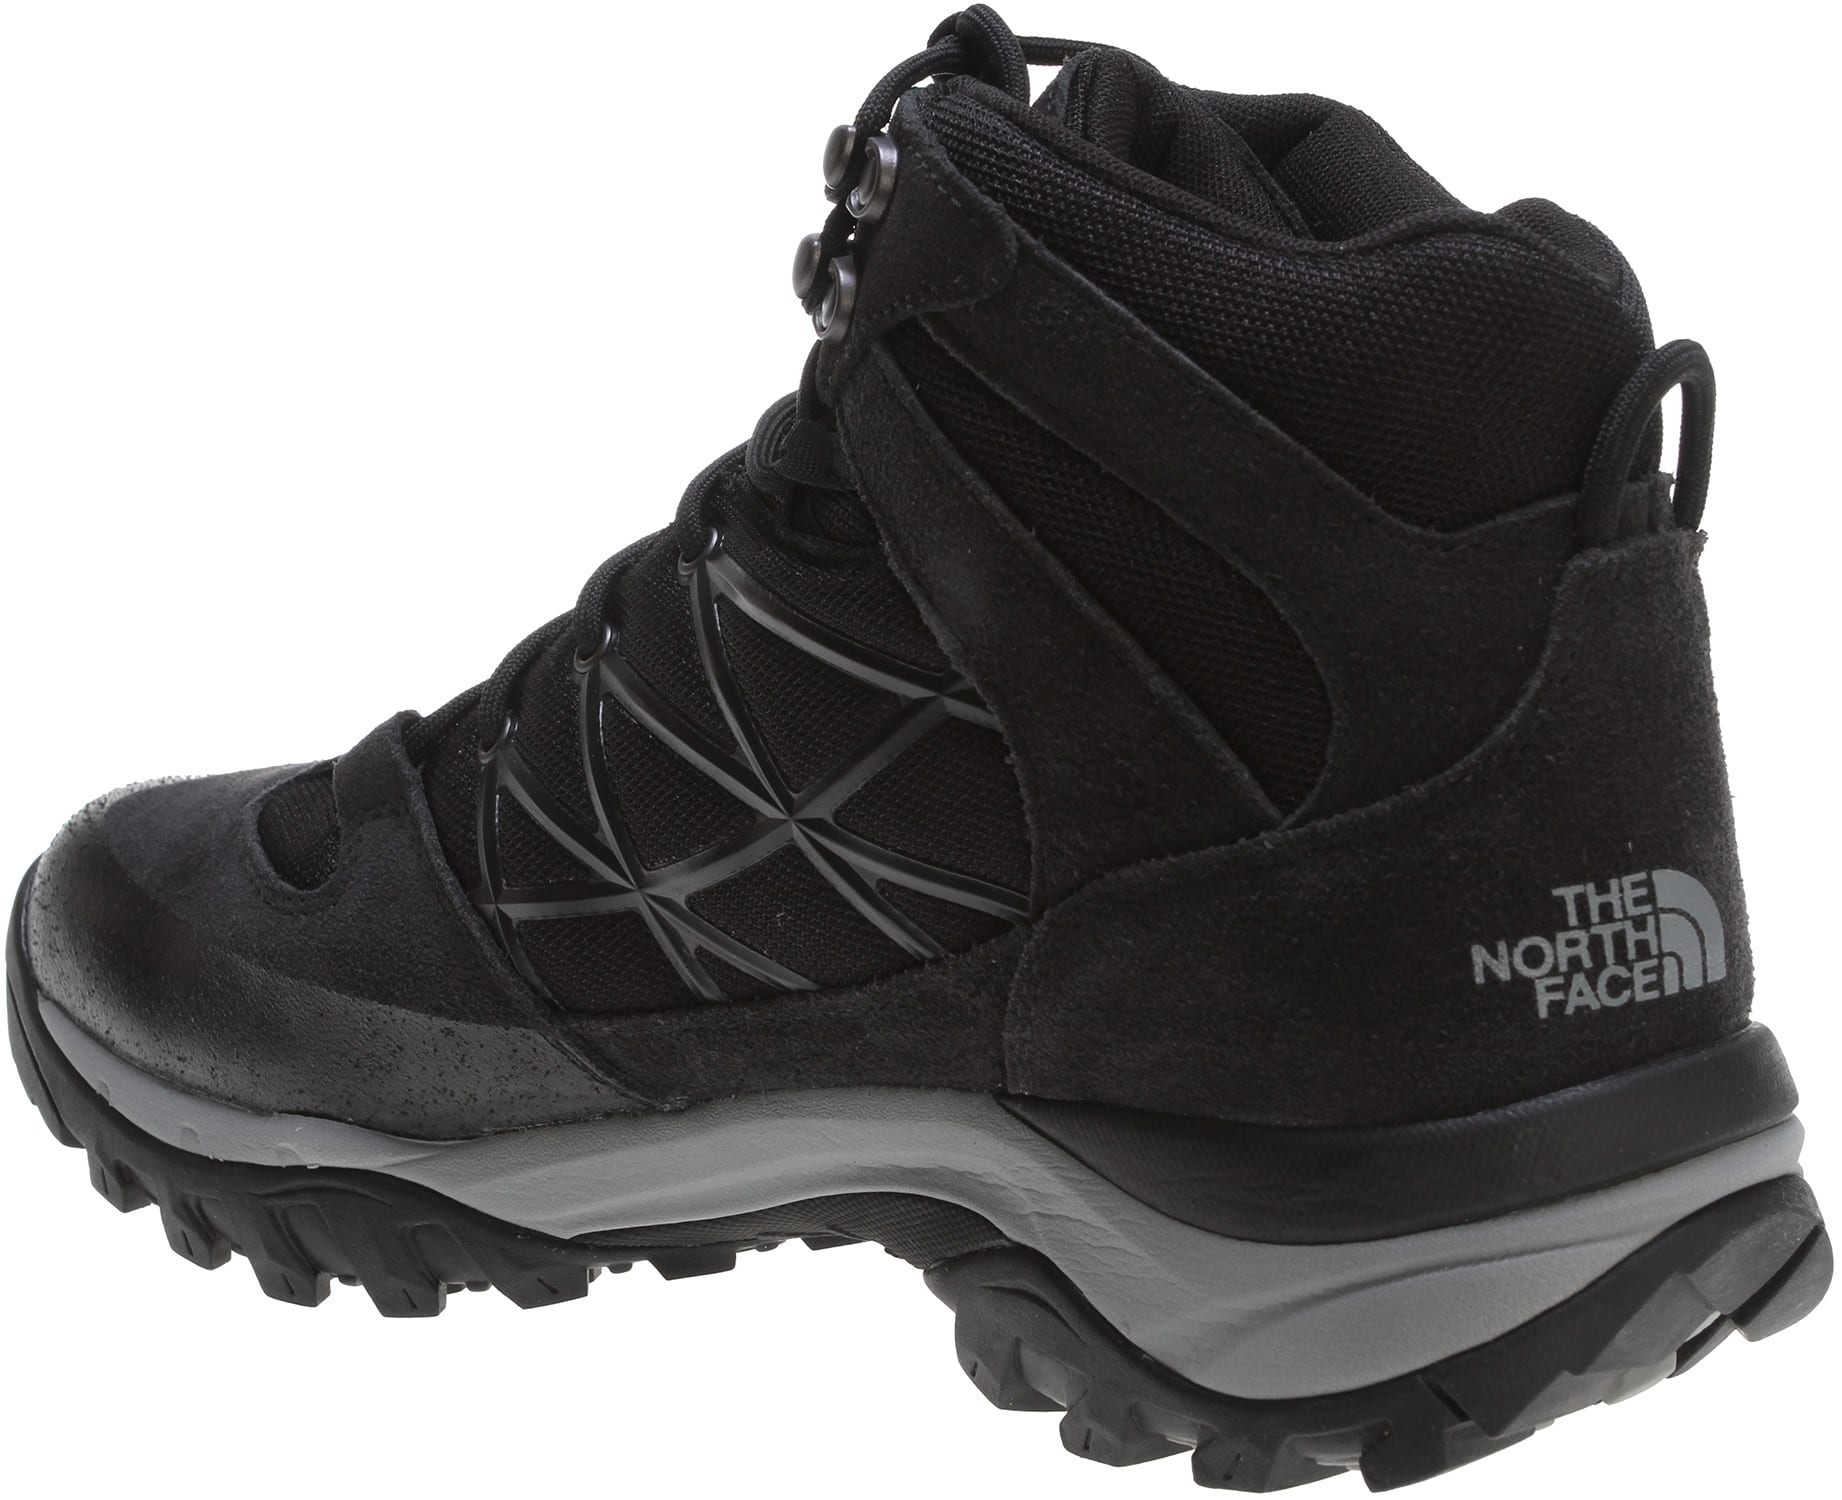 The North Face Storm Mid Wp Hiking Boots